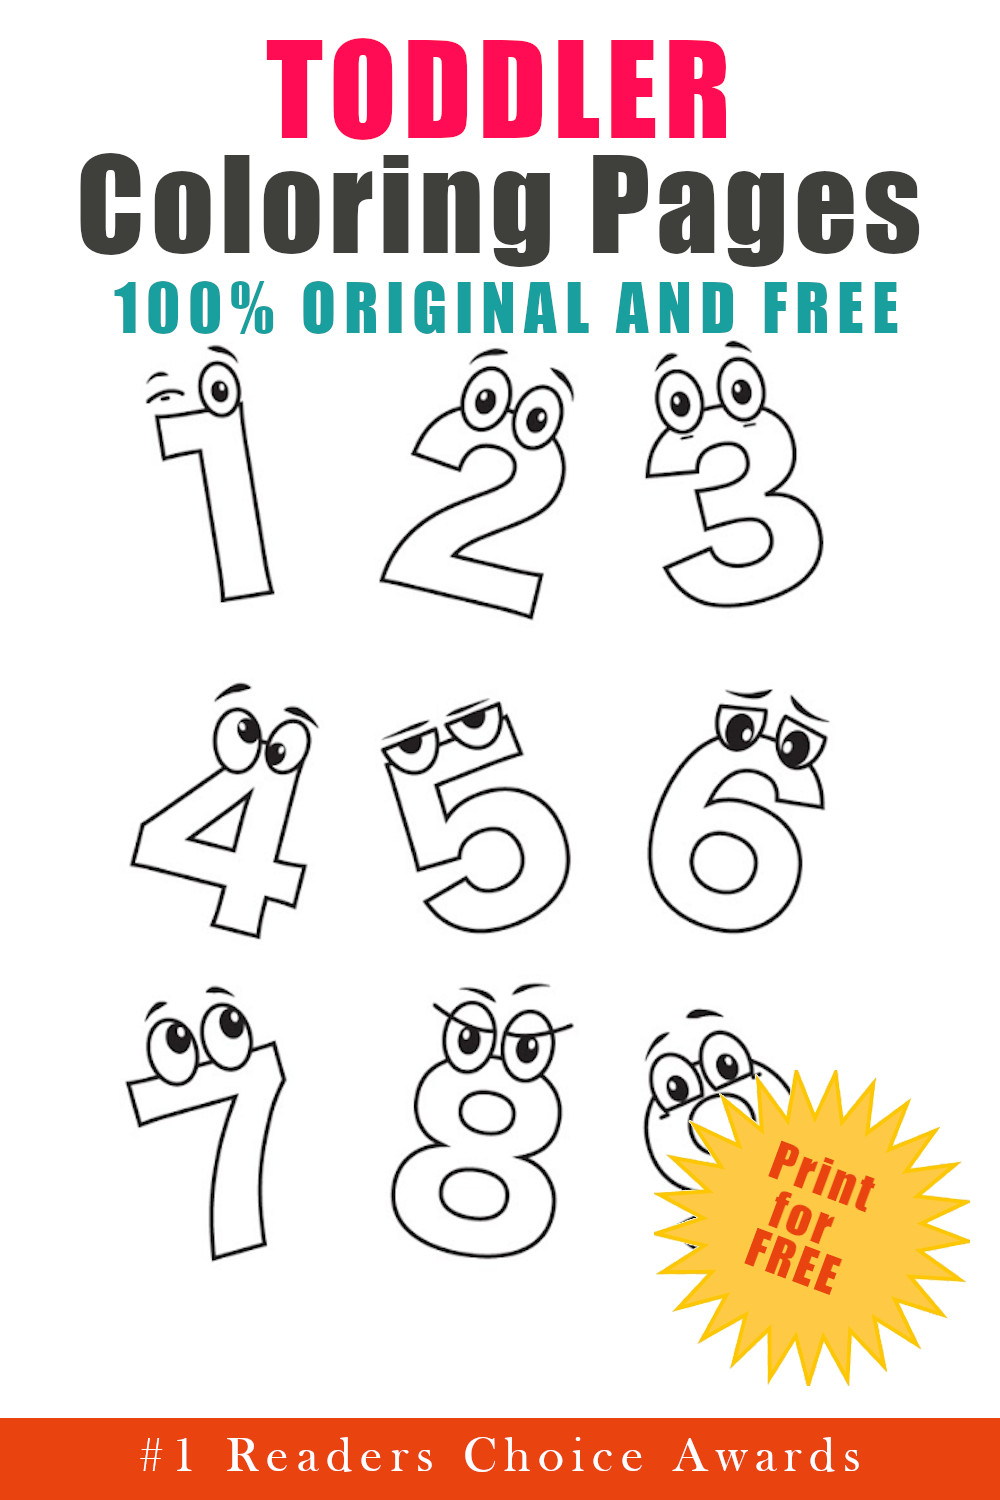 original and free toddler coloring pages